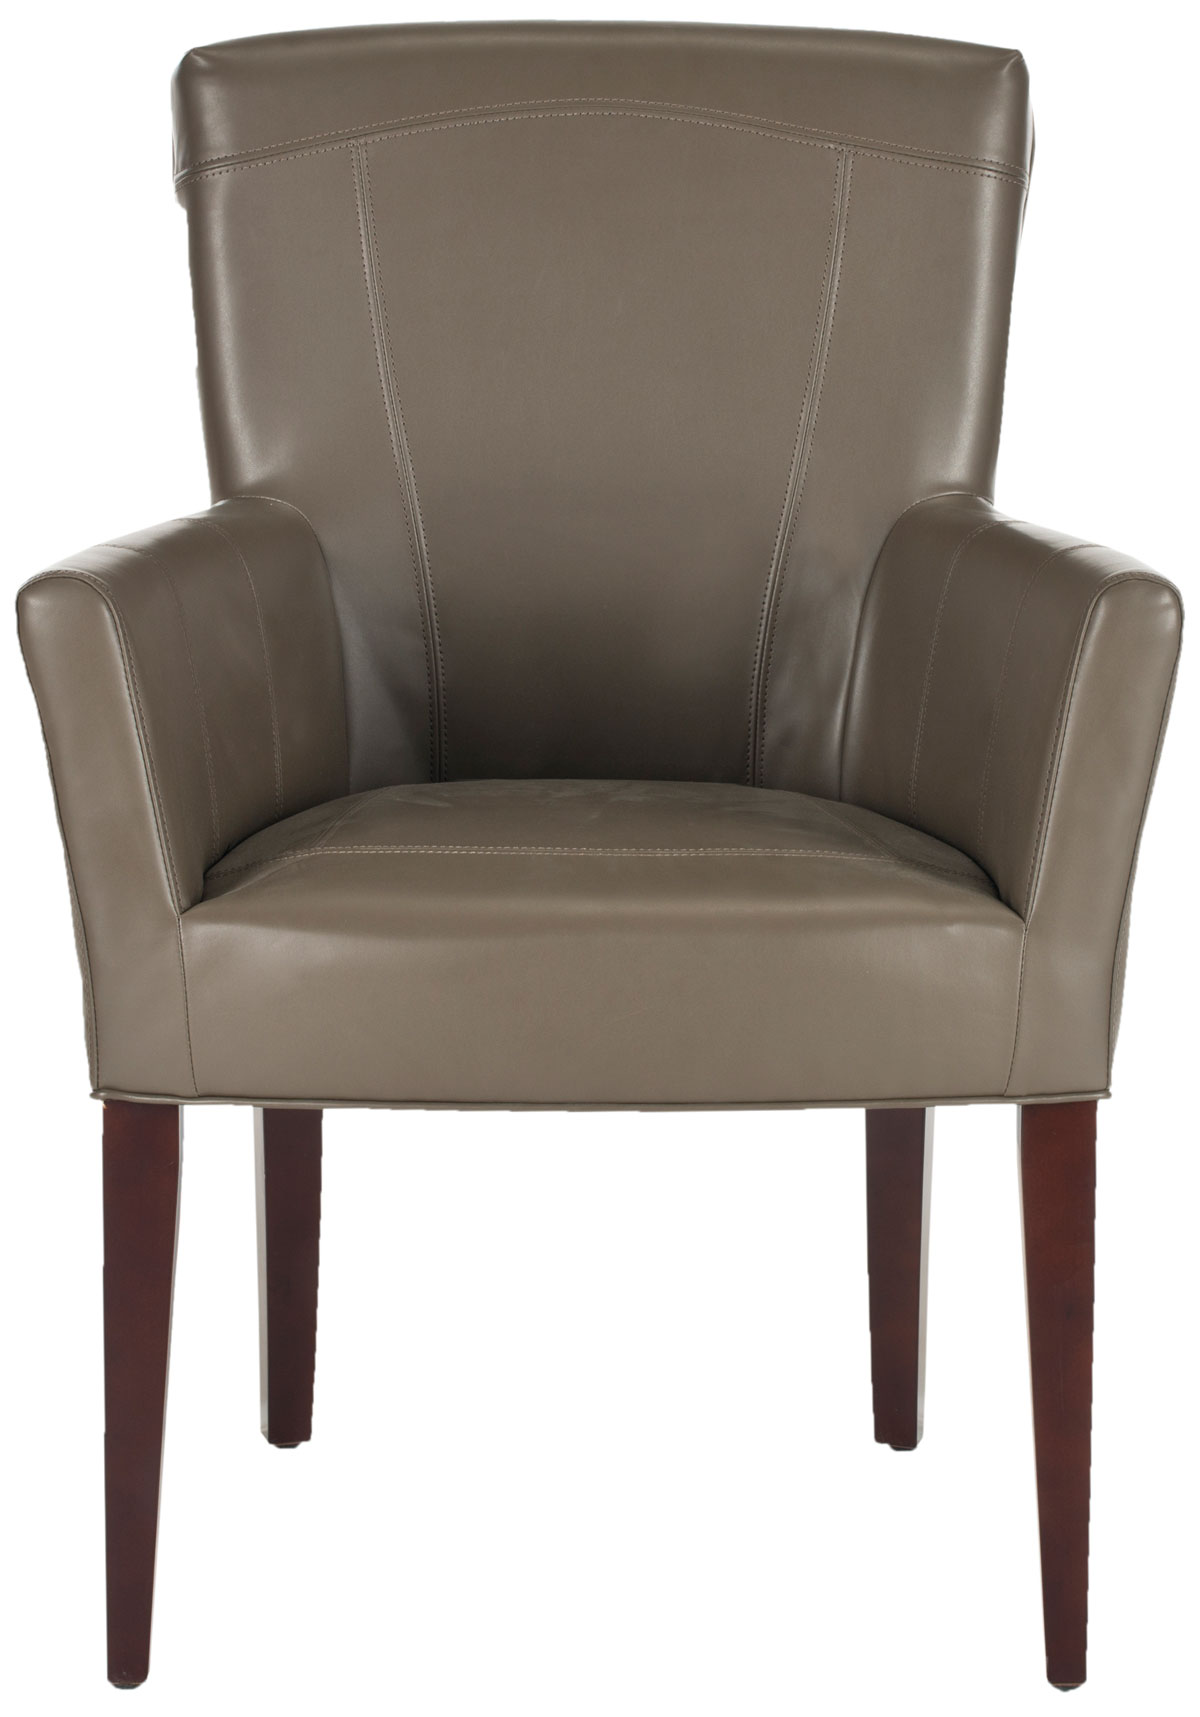 Leather Chairs Target Mcr4710b Accent Chairs Furniture By Safavieh